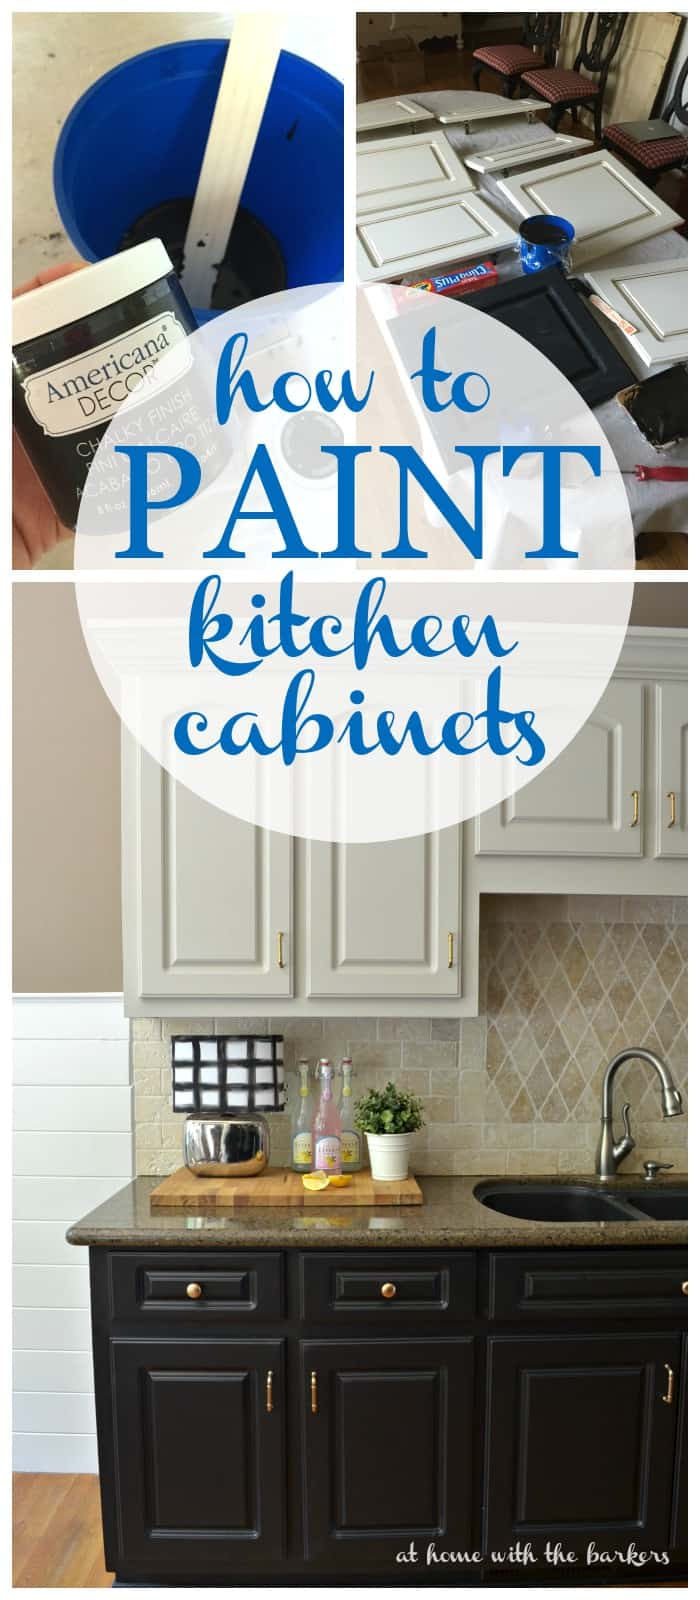 How to Paint Kitchen Cabinets- At Home with The Barkers